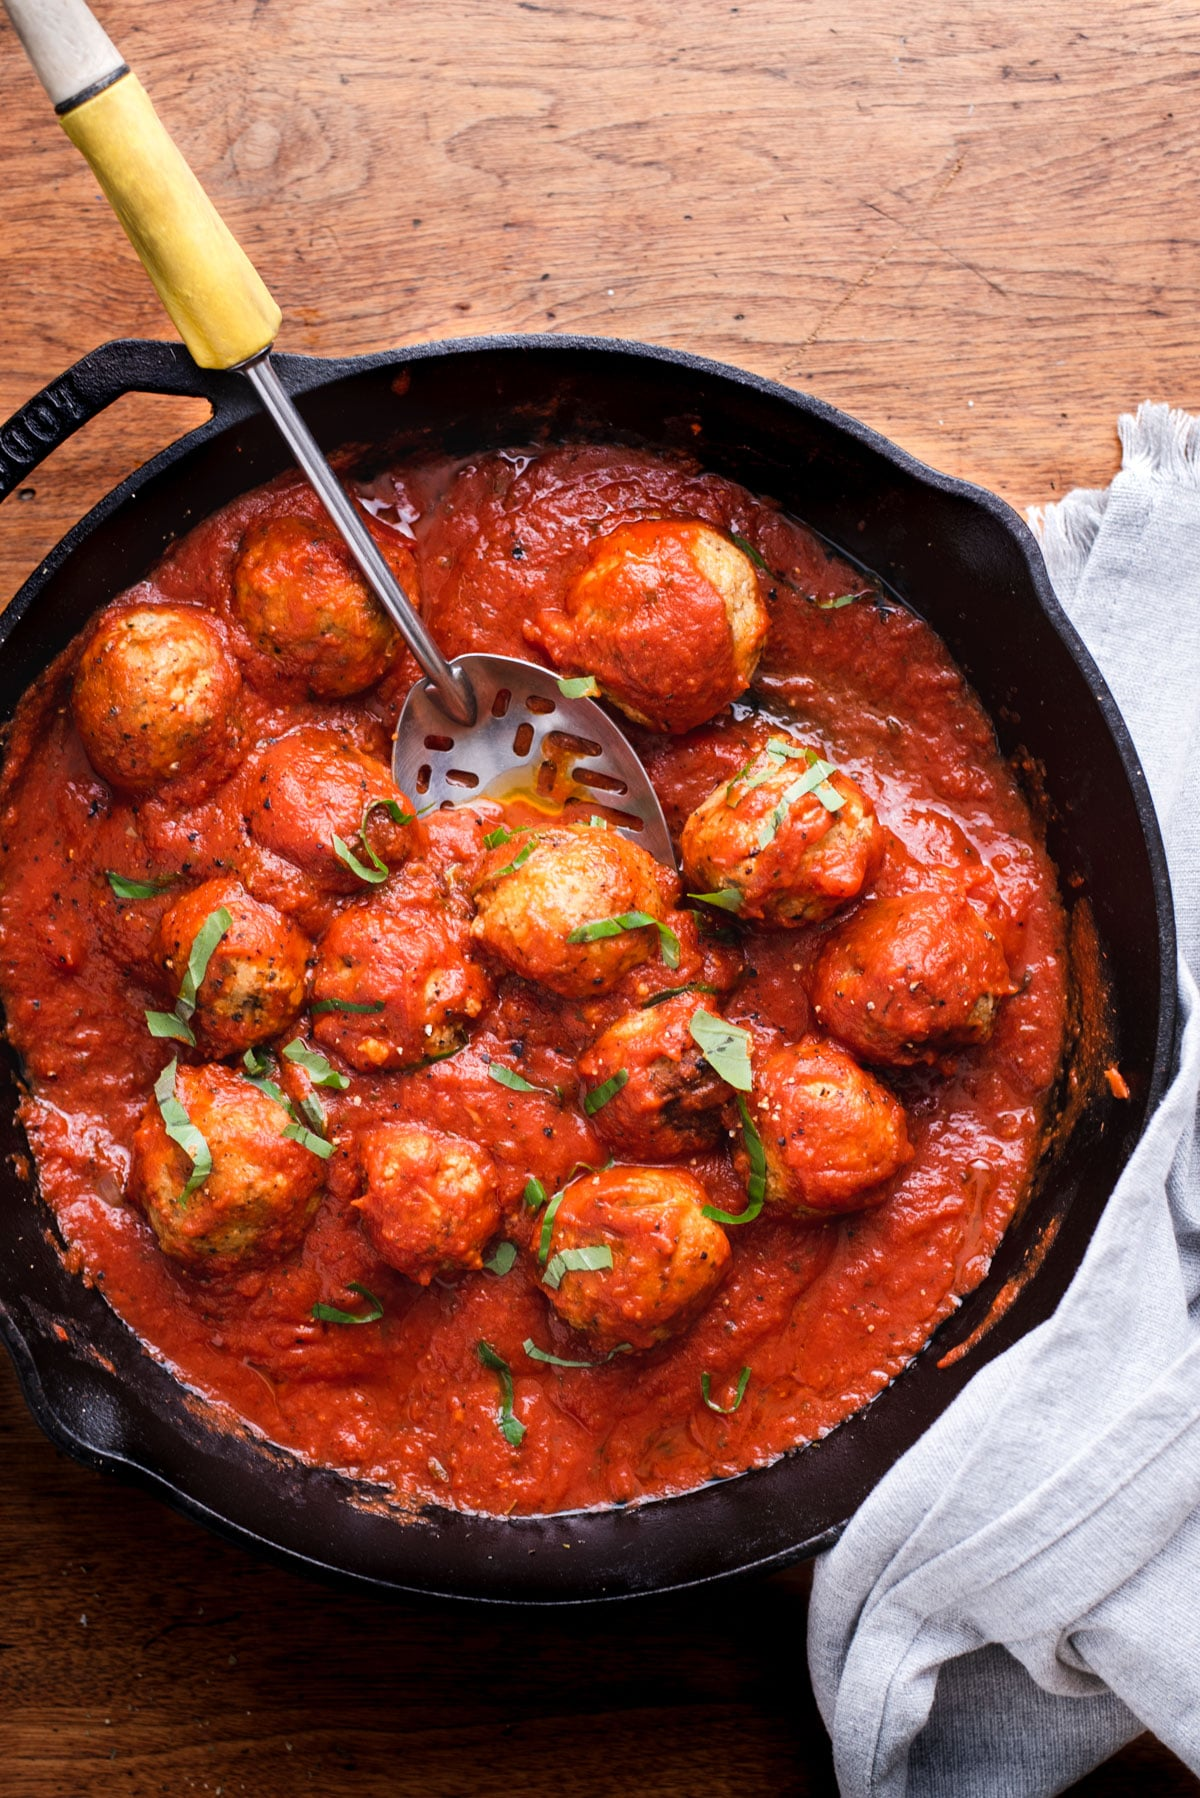 Overhead view of cast iron pan filled with meatballs in tomato sauce